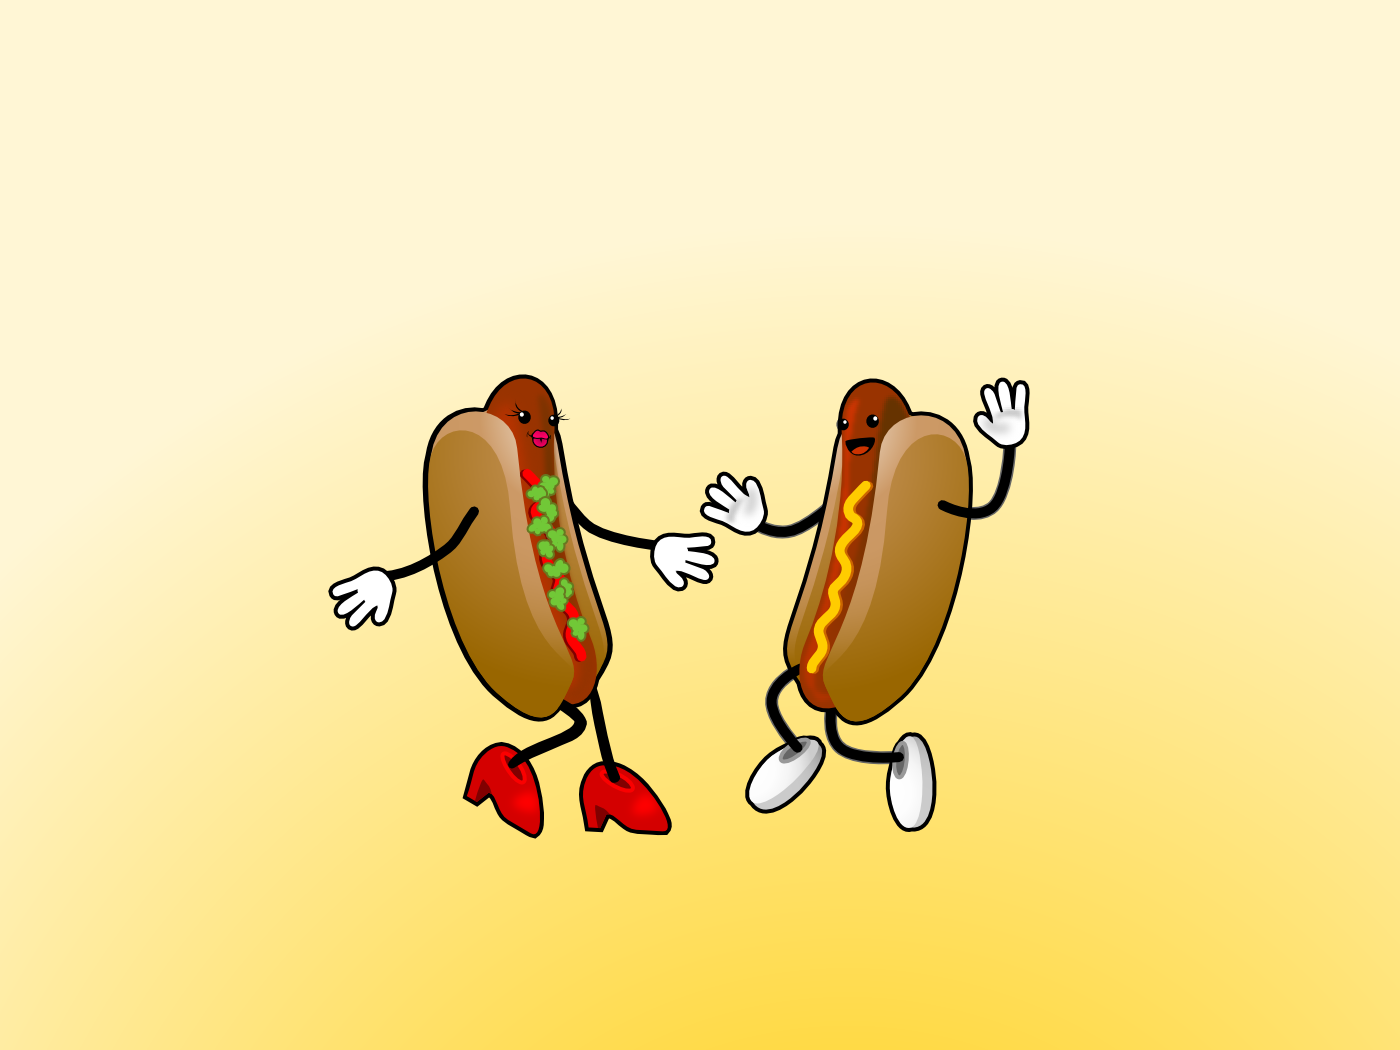 You can have the hot dog if…